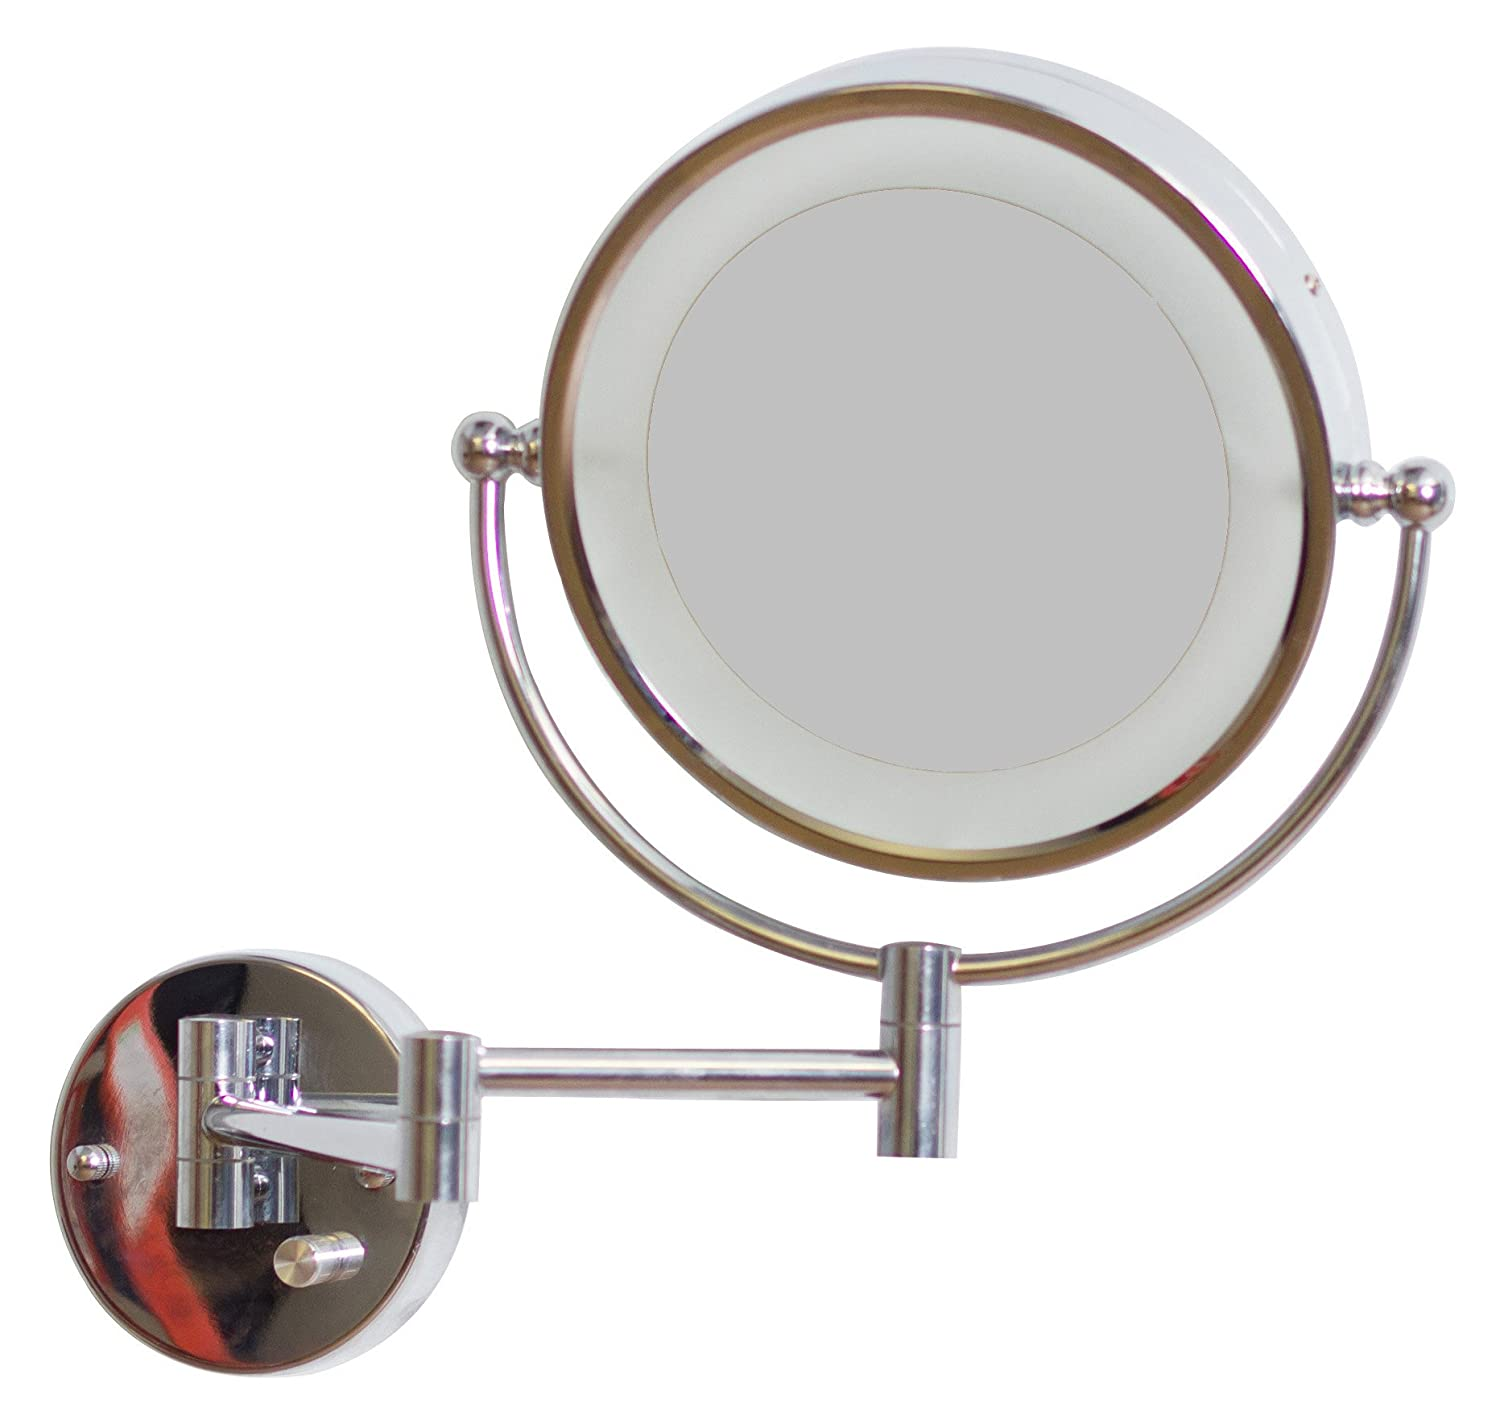 American Imaginations AI-14-557 Round LED Mirror with Light Dimmer and Dual 1x/5x Zoom, 8.5-Inch IMG Imports Inc.